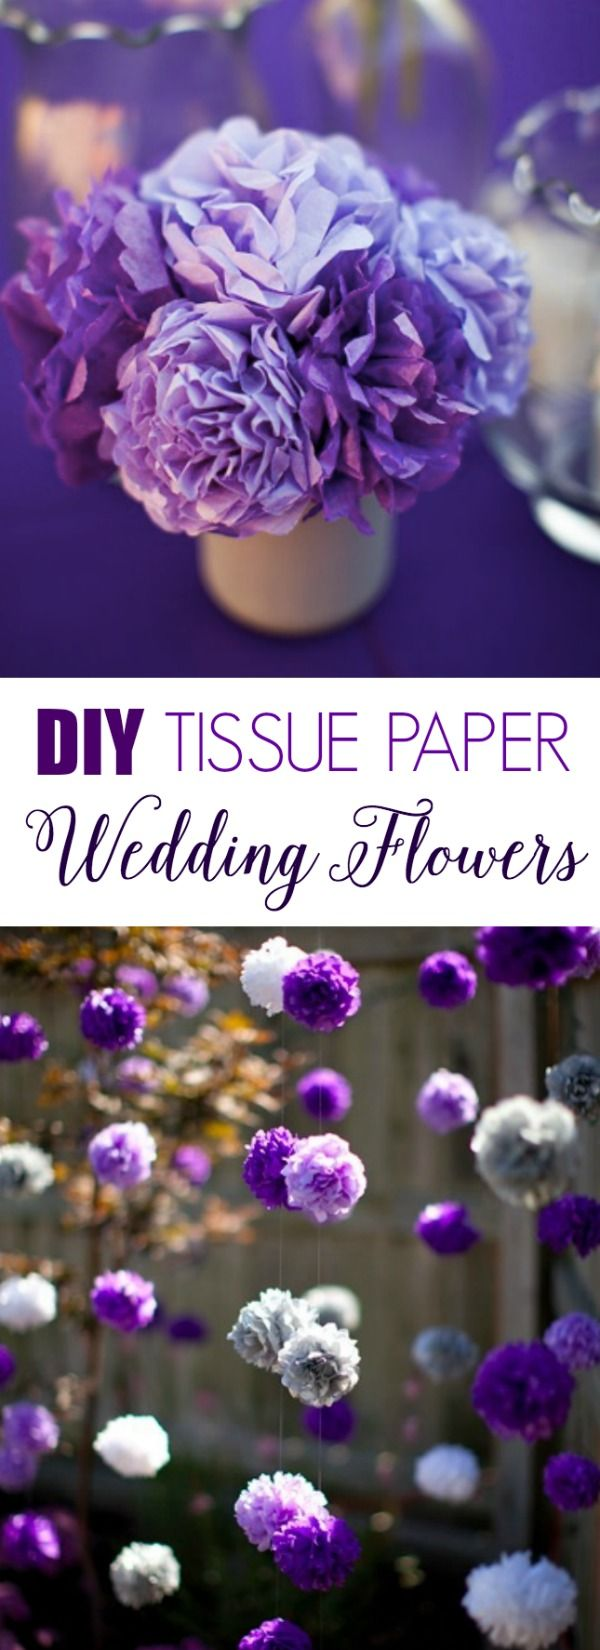 Diy Tissue Paper Wedding Flowers Instructions And Supplies Http